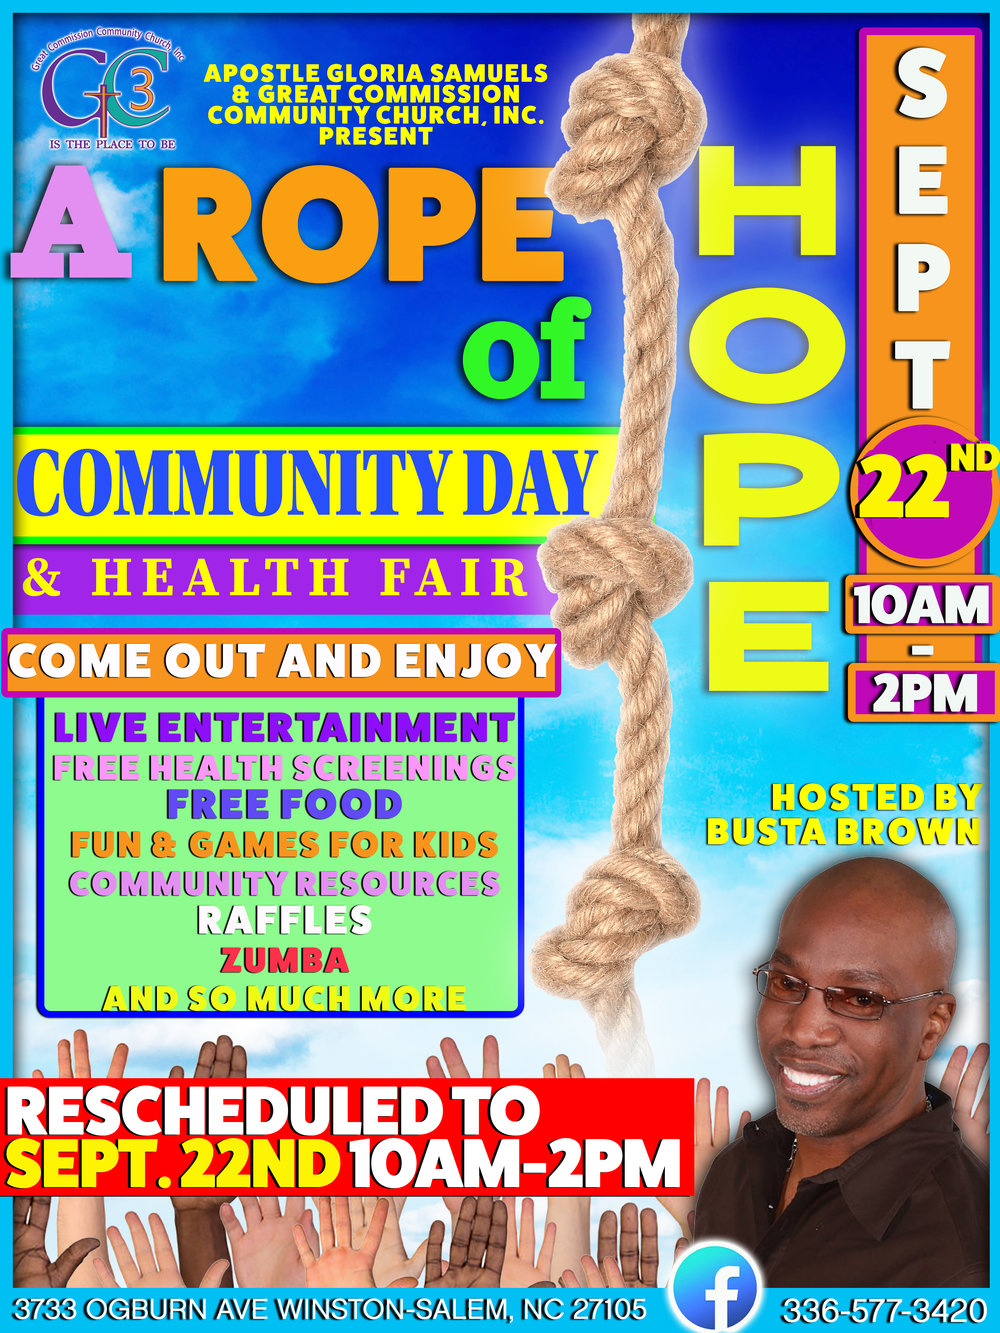 A Rope of Hope RScopy.jpg